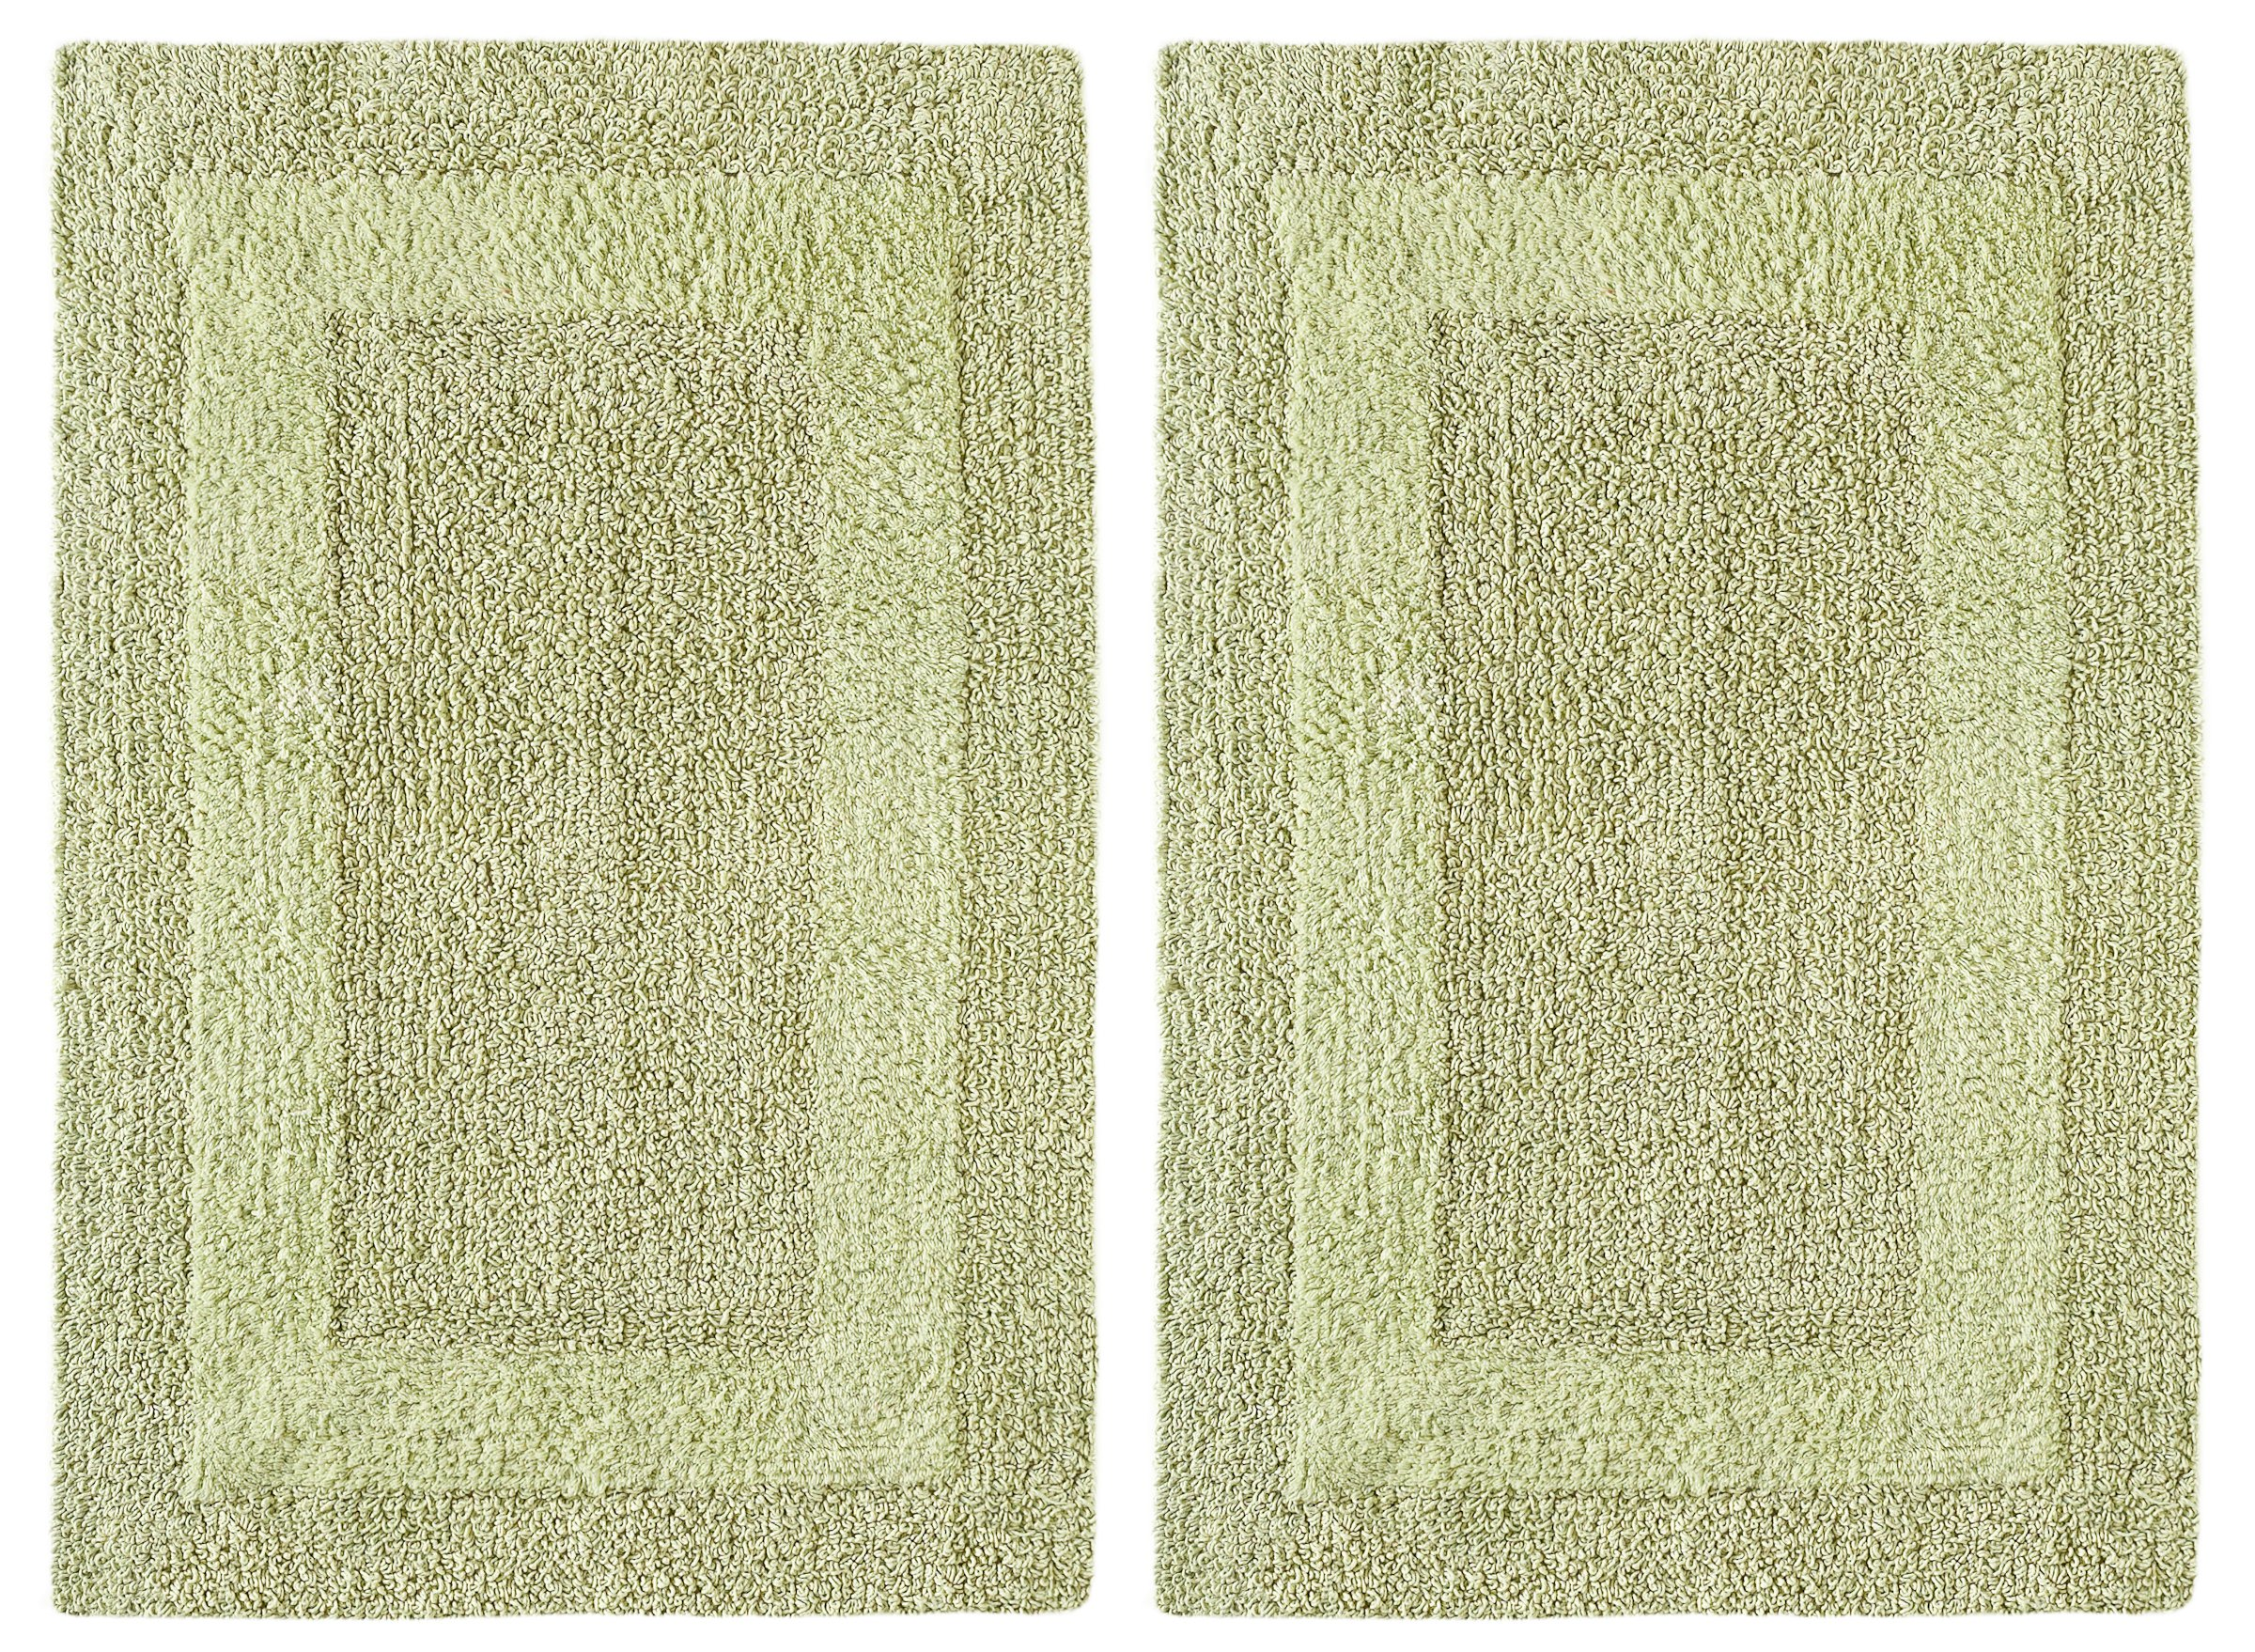 Cotton Craft 2 Piece Reversible Step Out Bath Mat Rug Set 17x24 Sage, 100% Pure Cotton, Super Soft, Plush & Absorbent, Hand Tufted Heavy Weight Construction, Full Reversible, Rug Pad Recommended